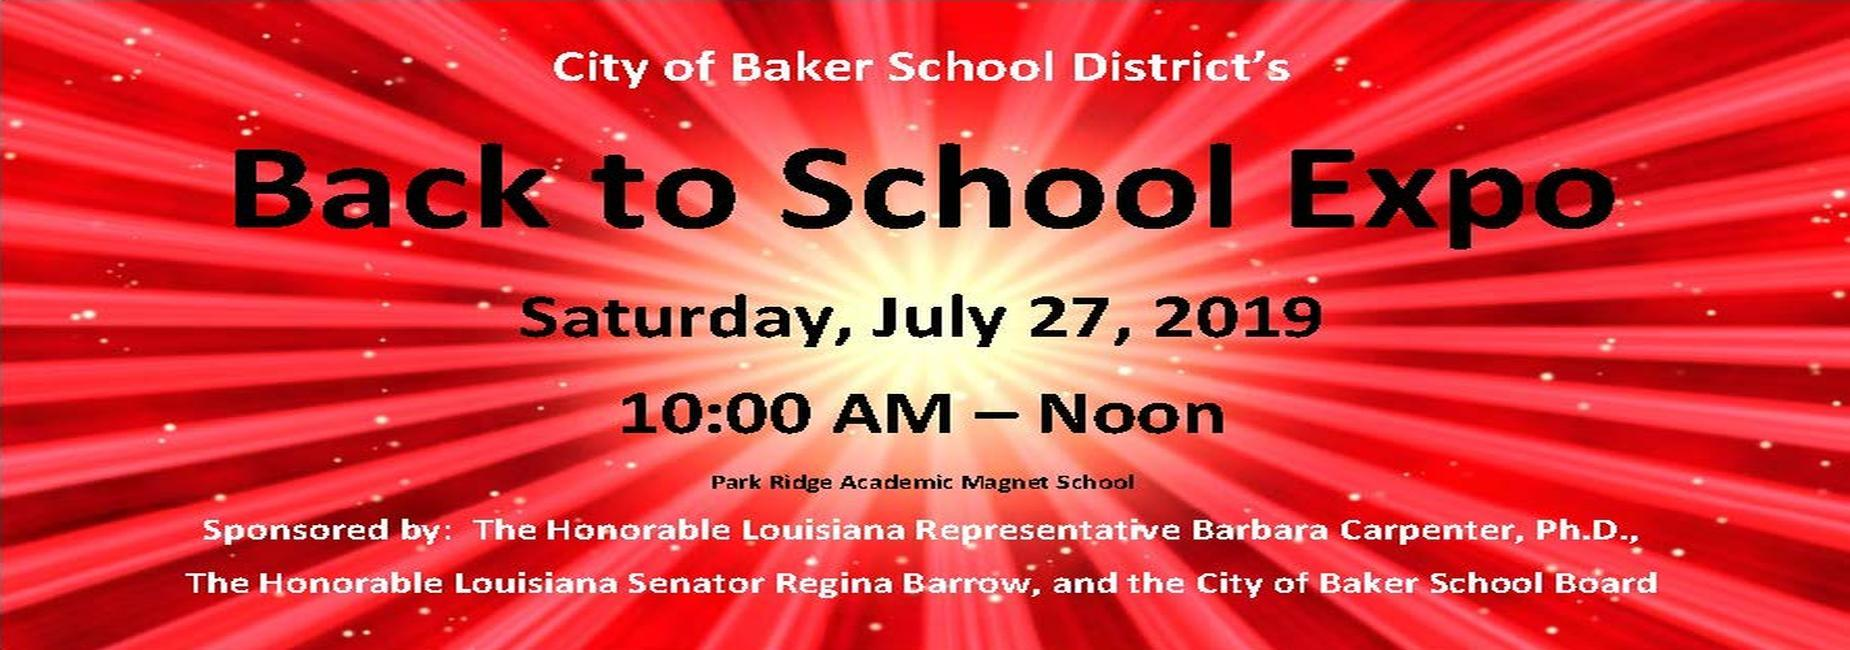 A graphic advertising the 2019 Back-to-school Expo for City of Baker School District